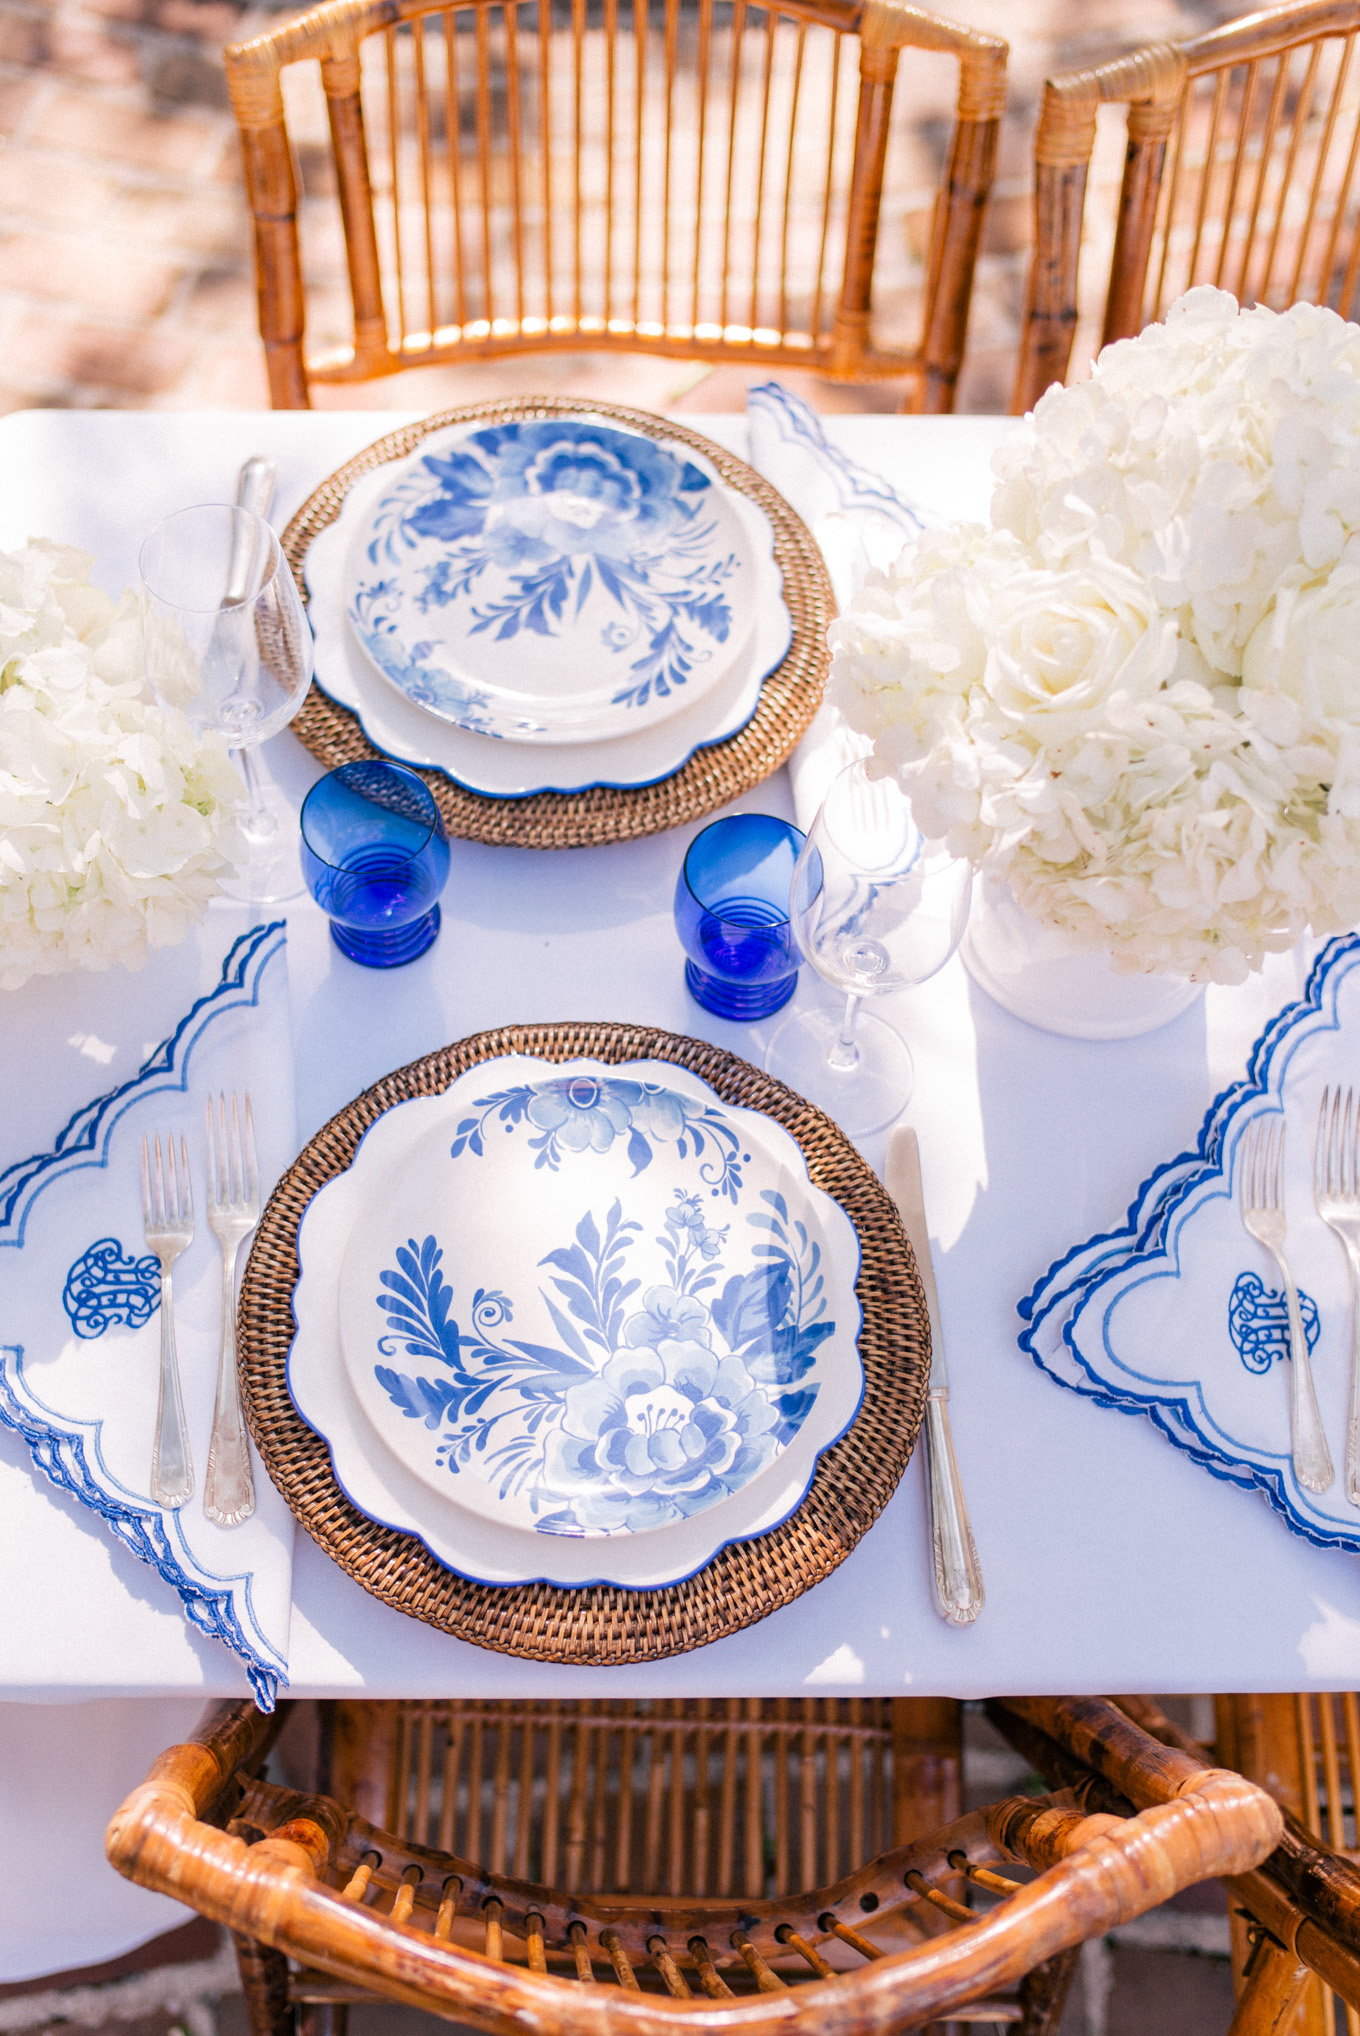 gmg-fourth-of-july-table-1009281